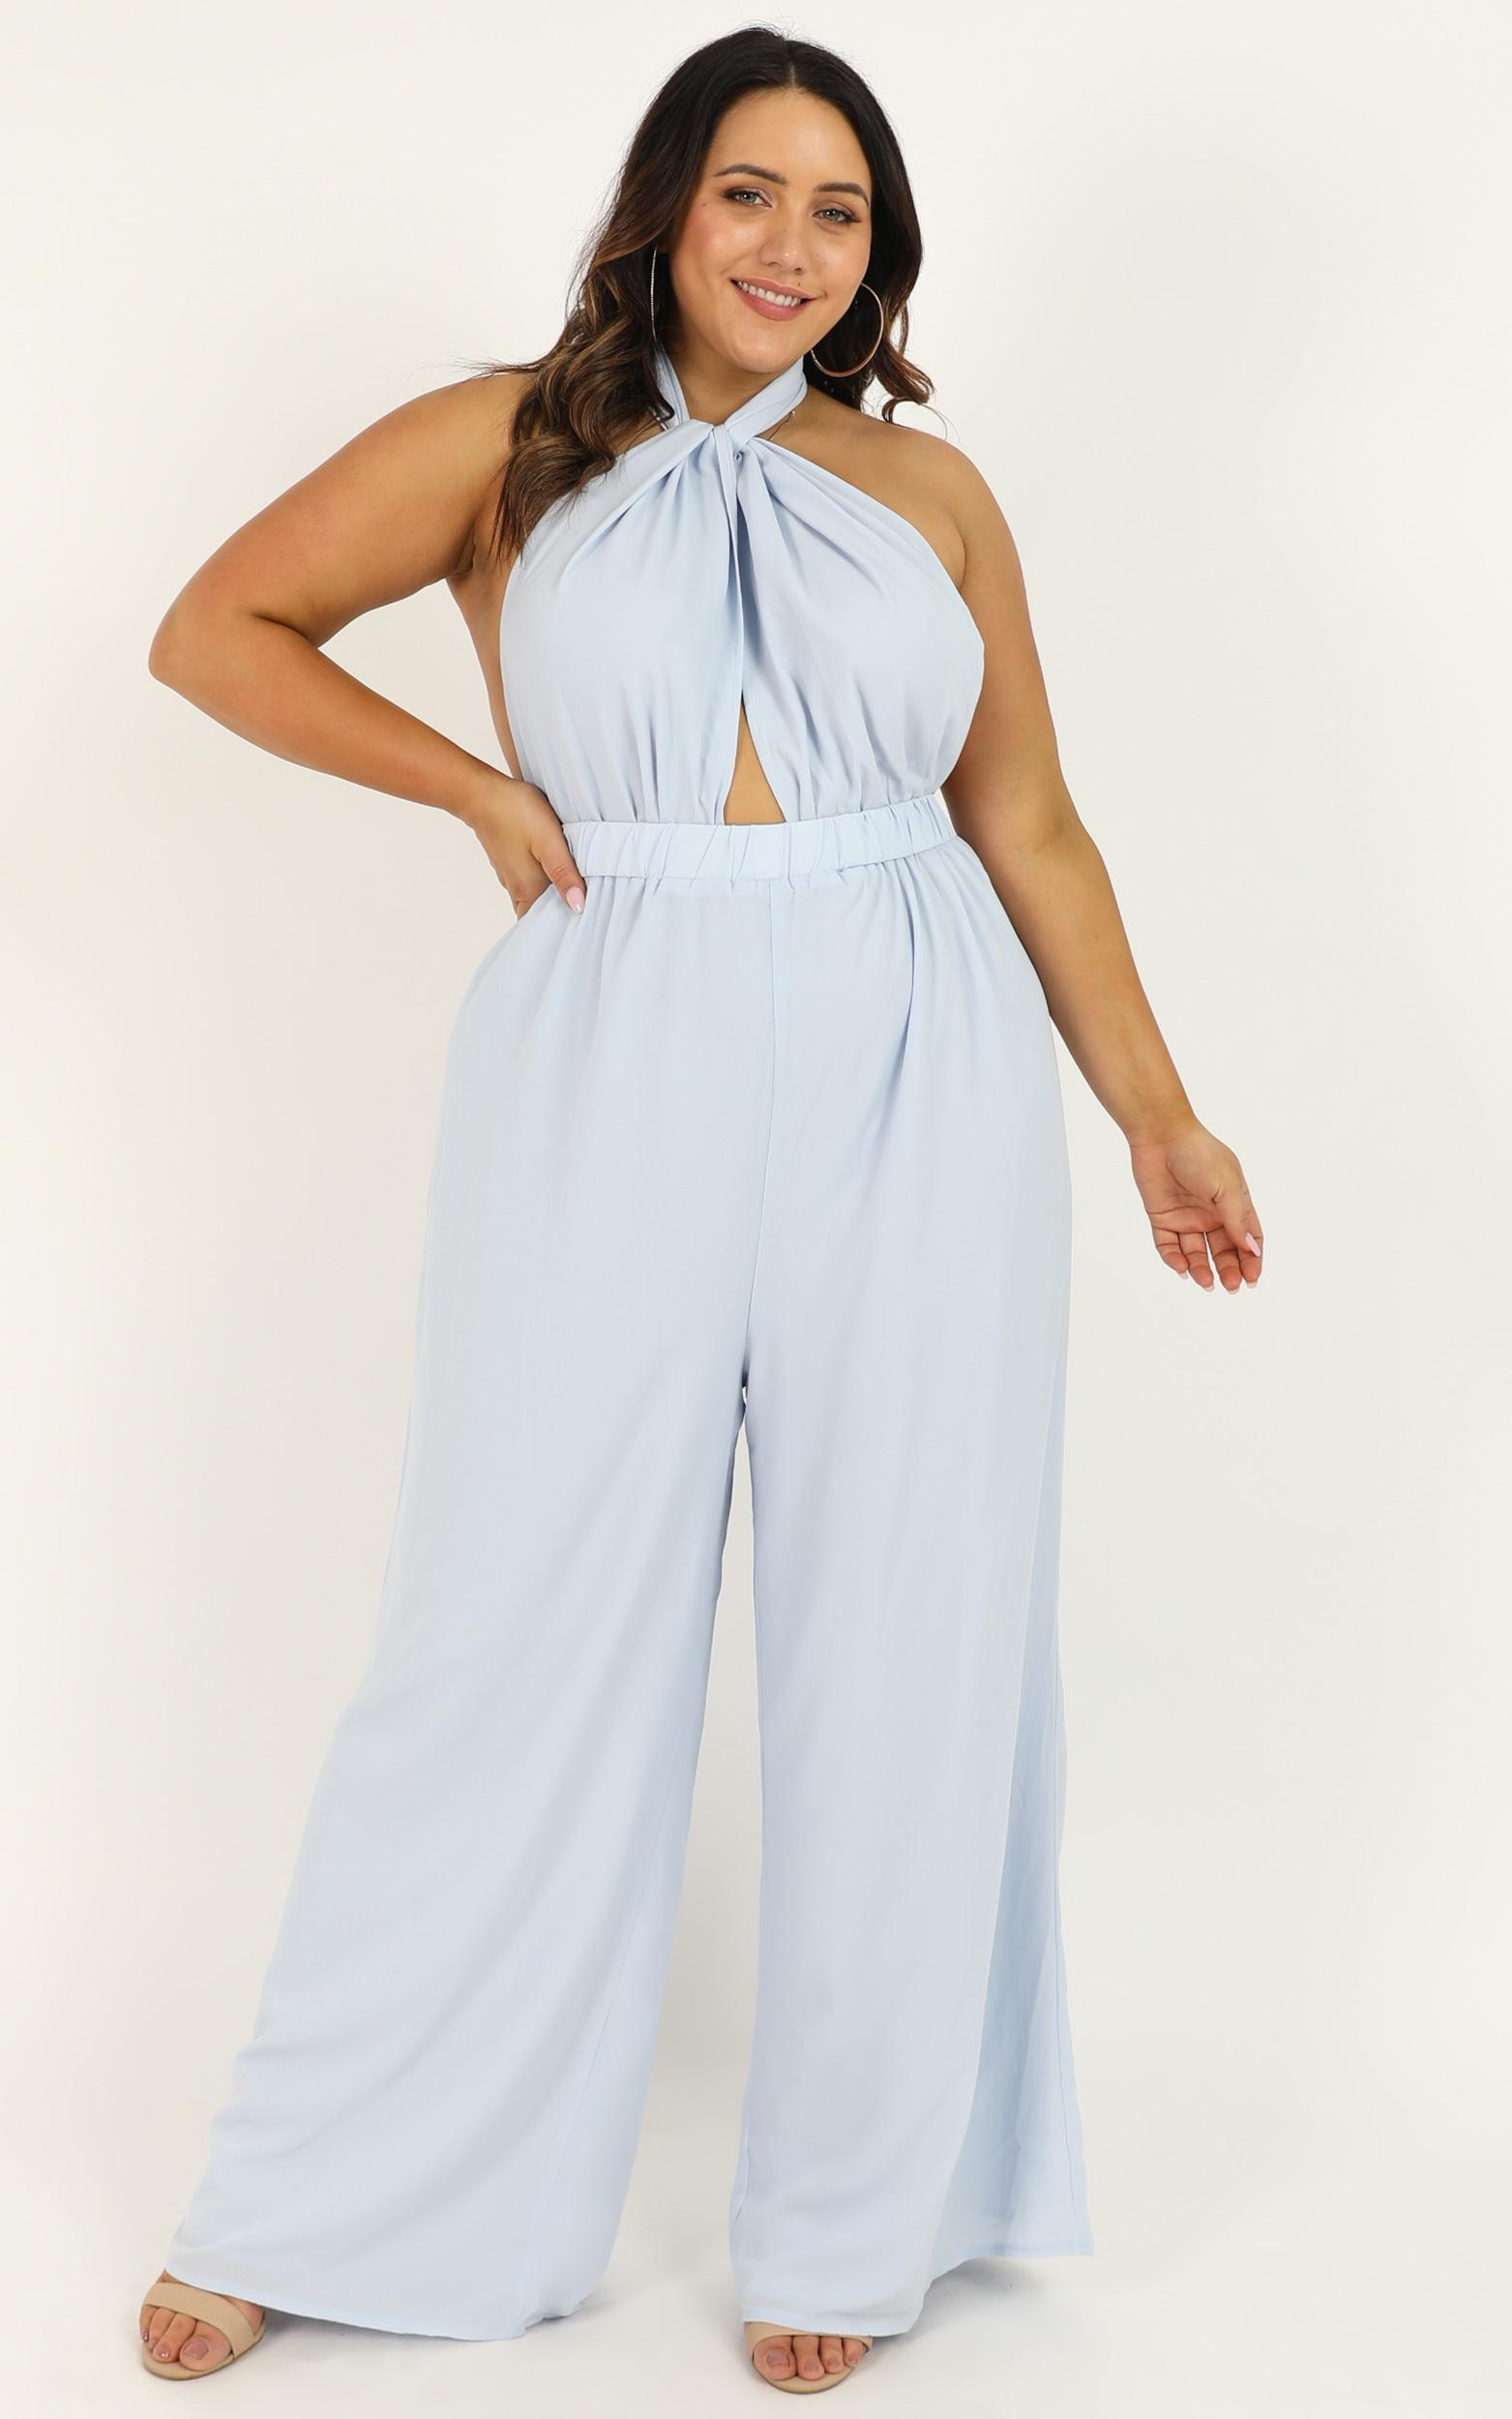 Girls Life Jumpsuit in light blue - 20 (XXXXL), Blue, hi-res image number null